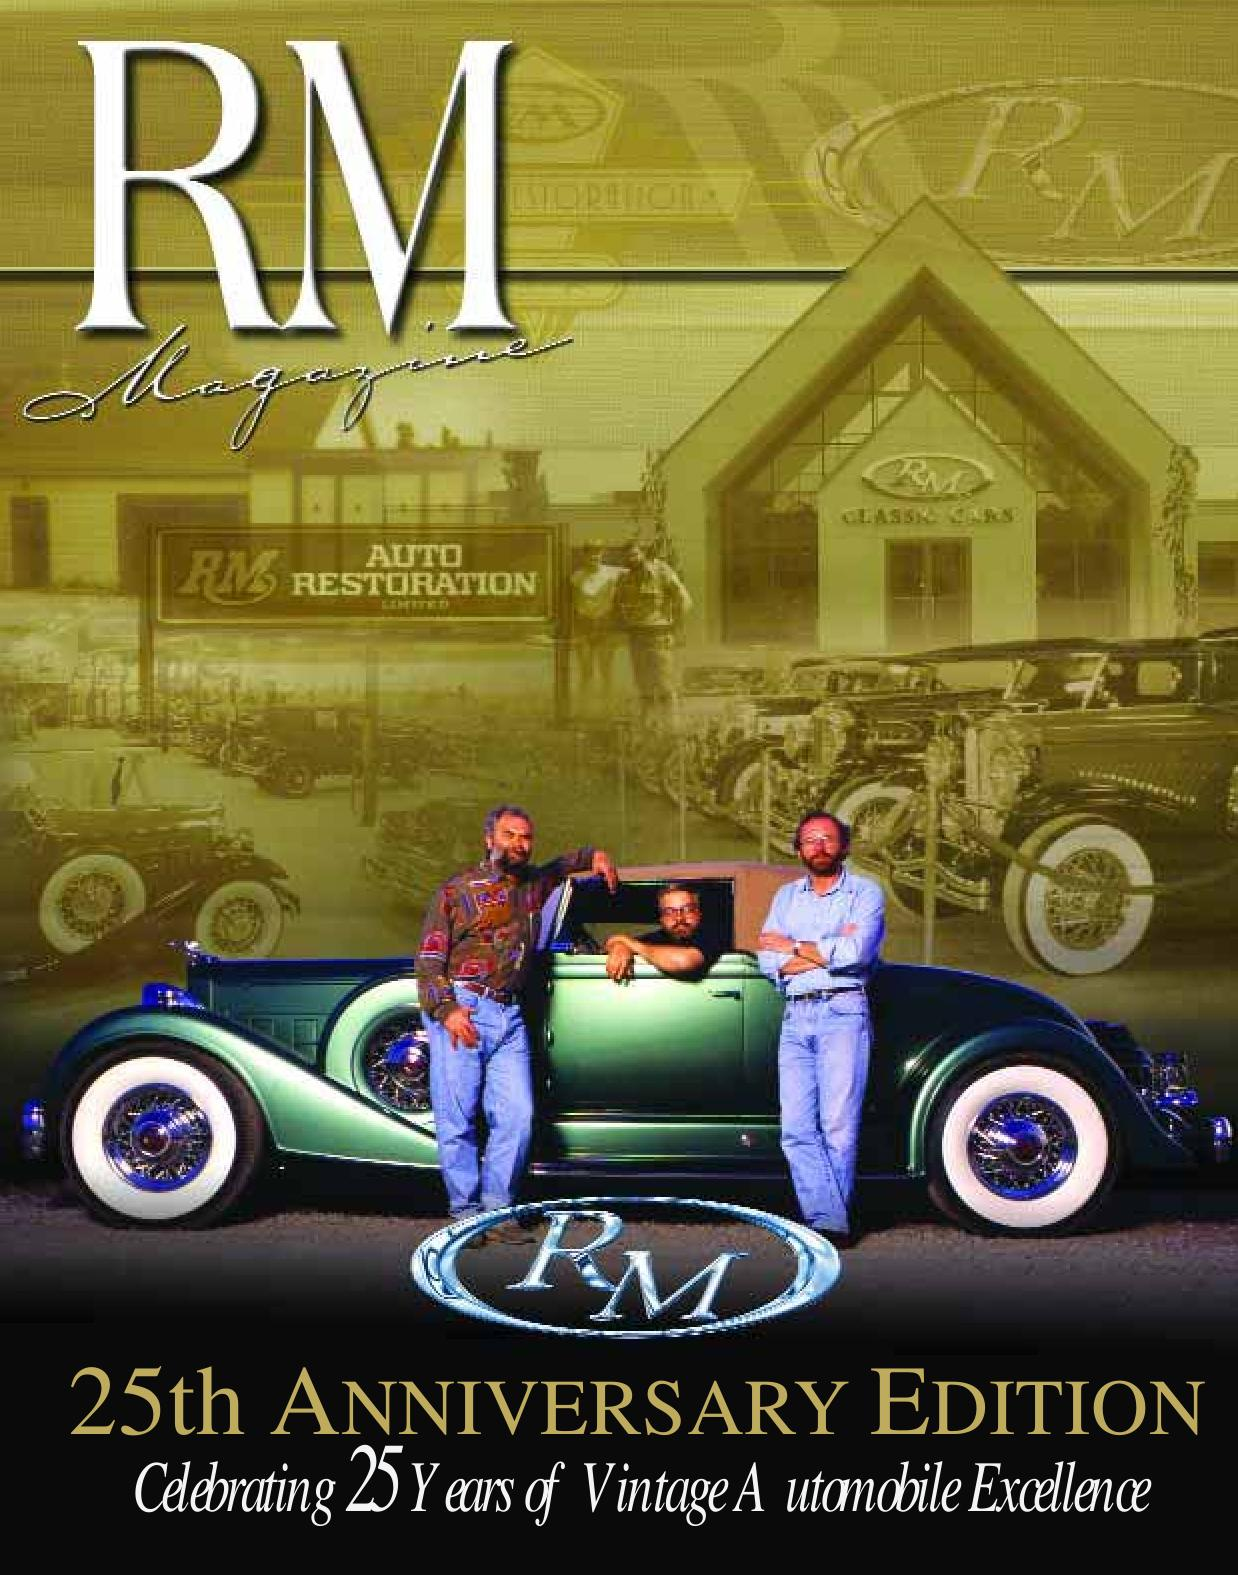 July 2004 Issue - 25th Anniversary Edition